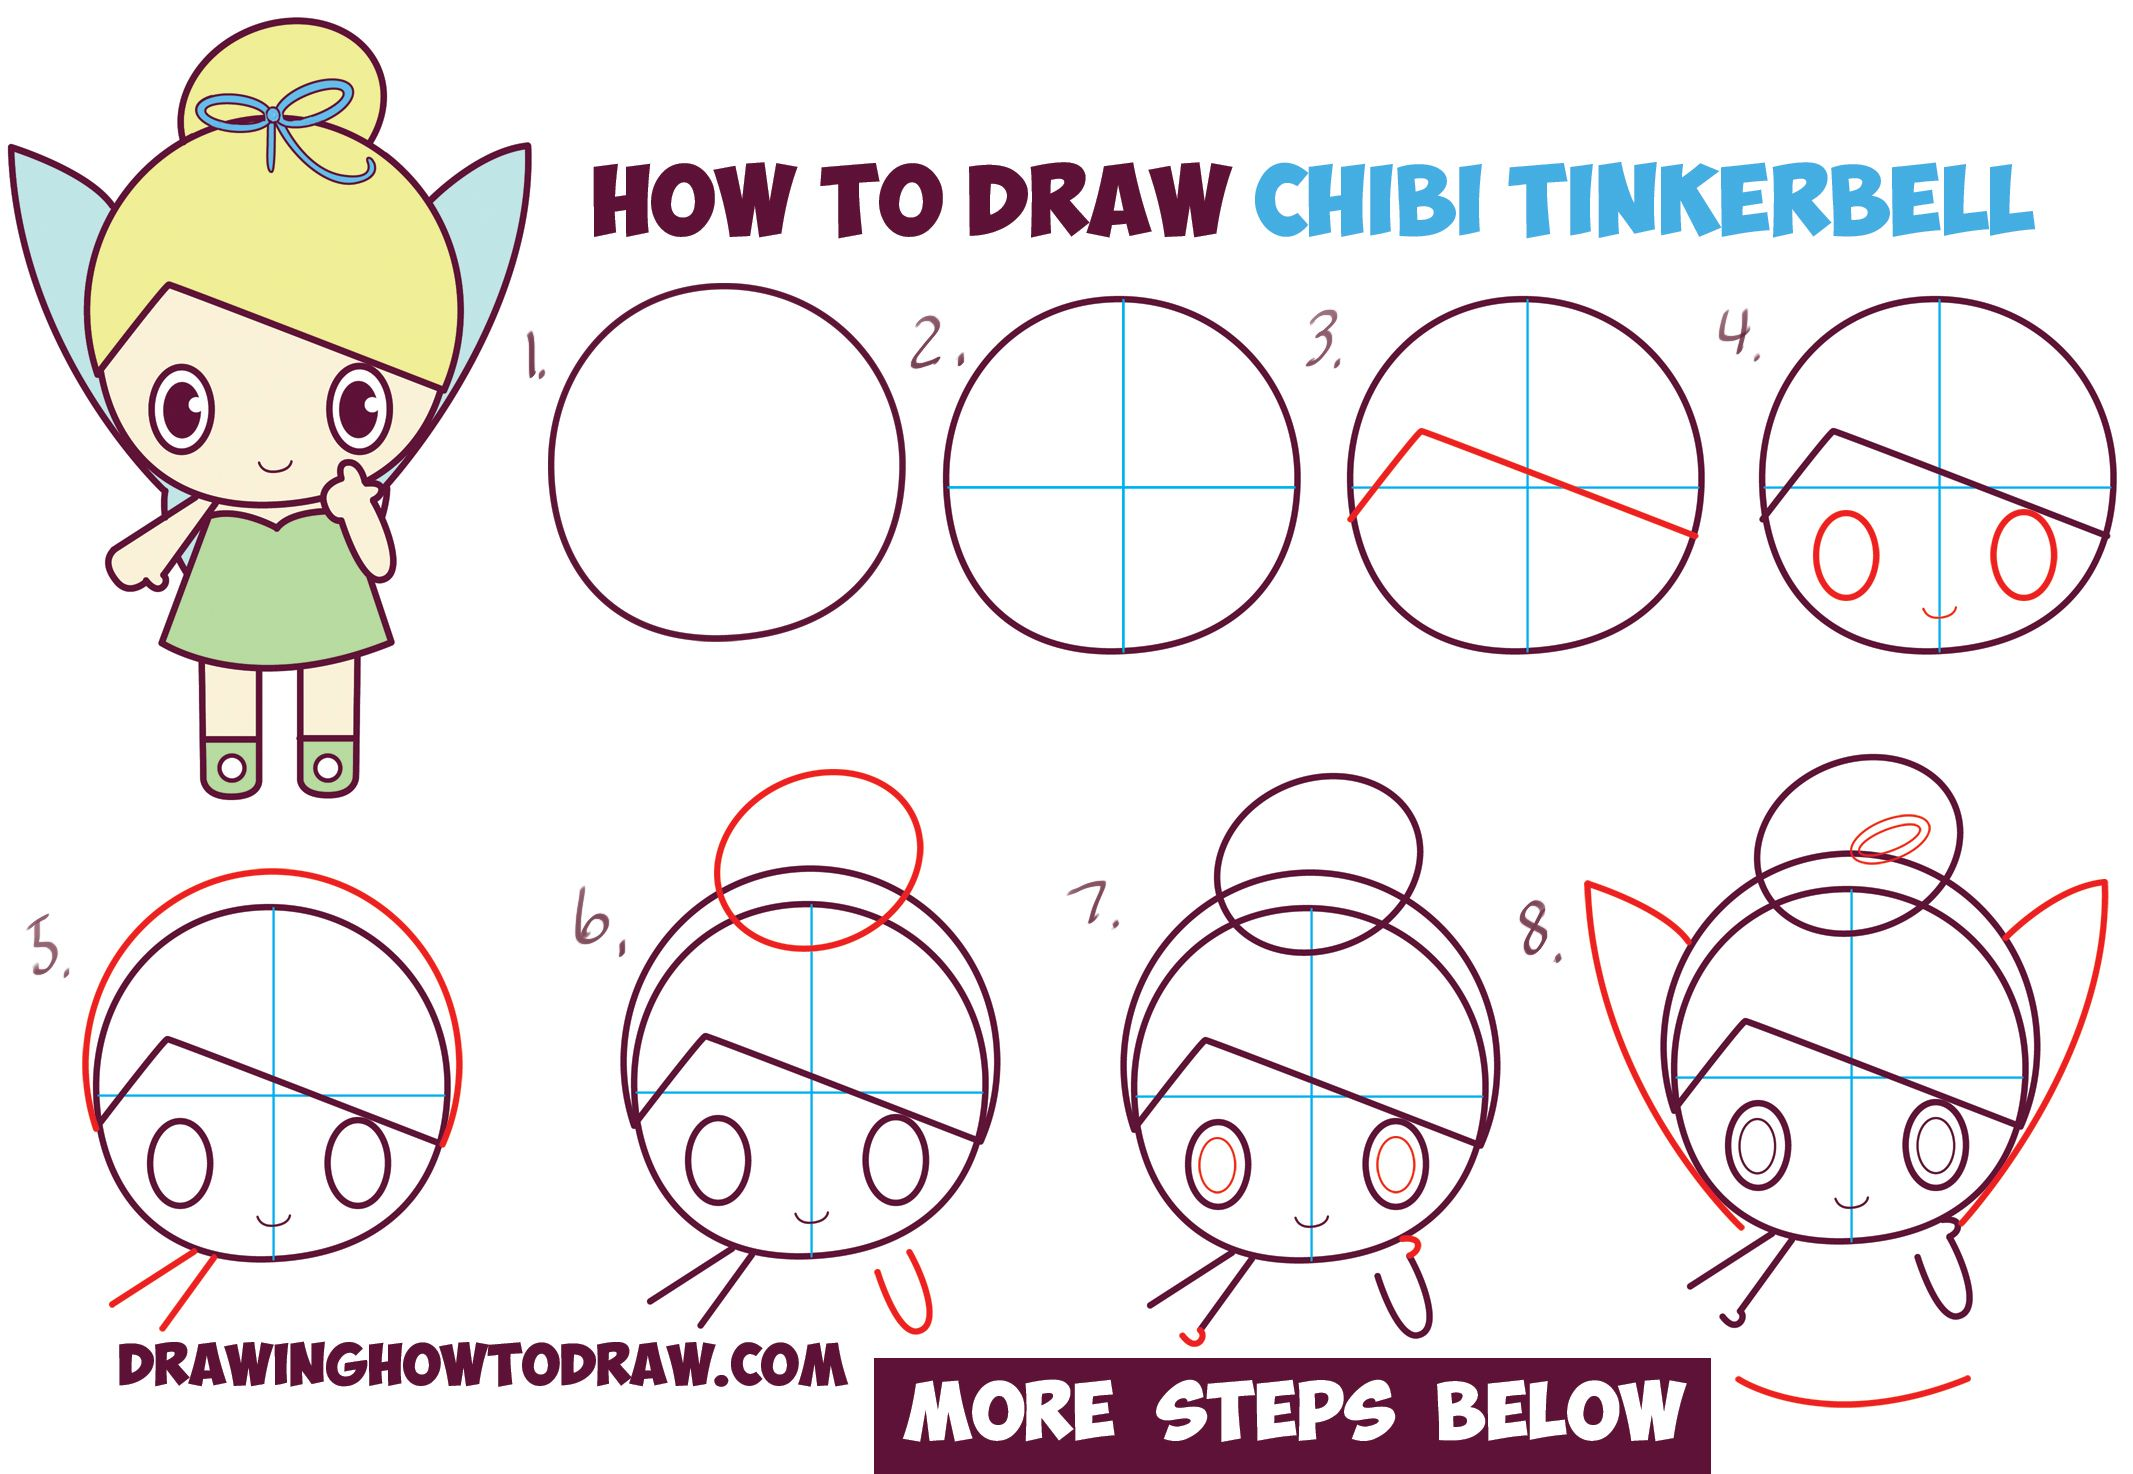 How to draw chibi tinkerbell the disney fairy in easy for How to draw something step by step